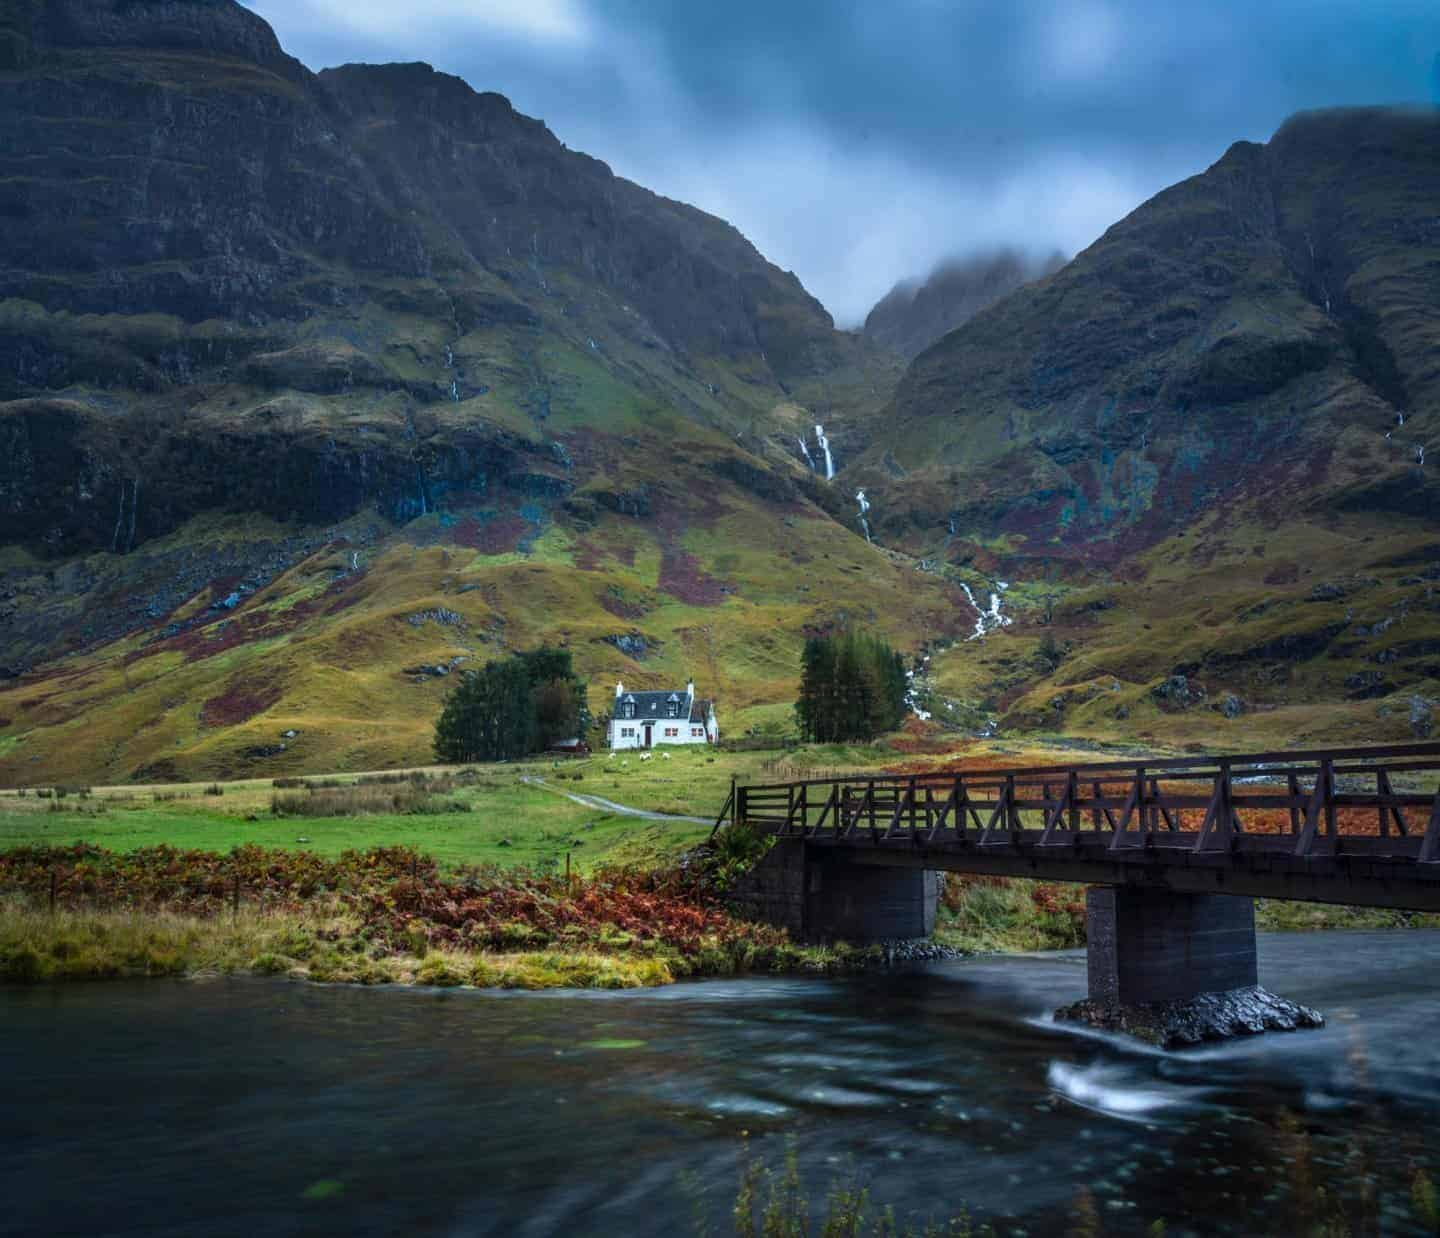 A quaint Scottish house in the Highlands on a moody Glencoe day.